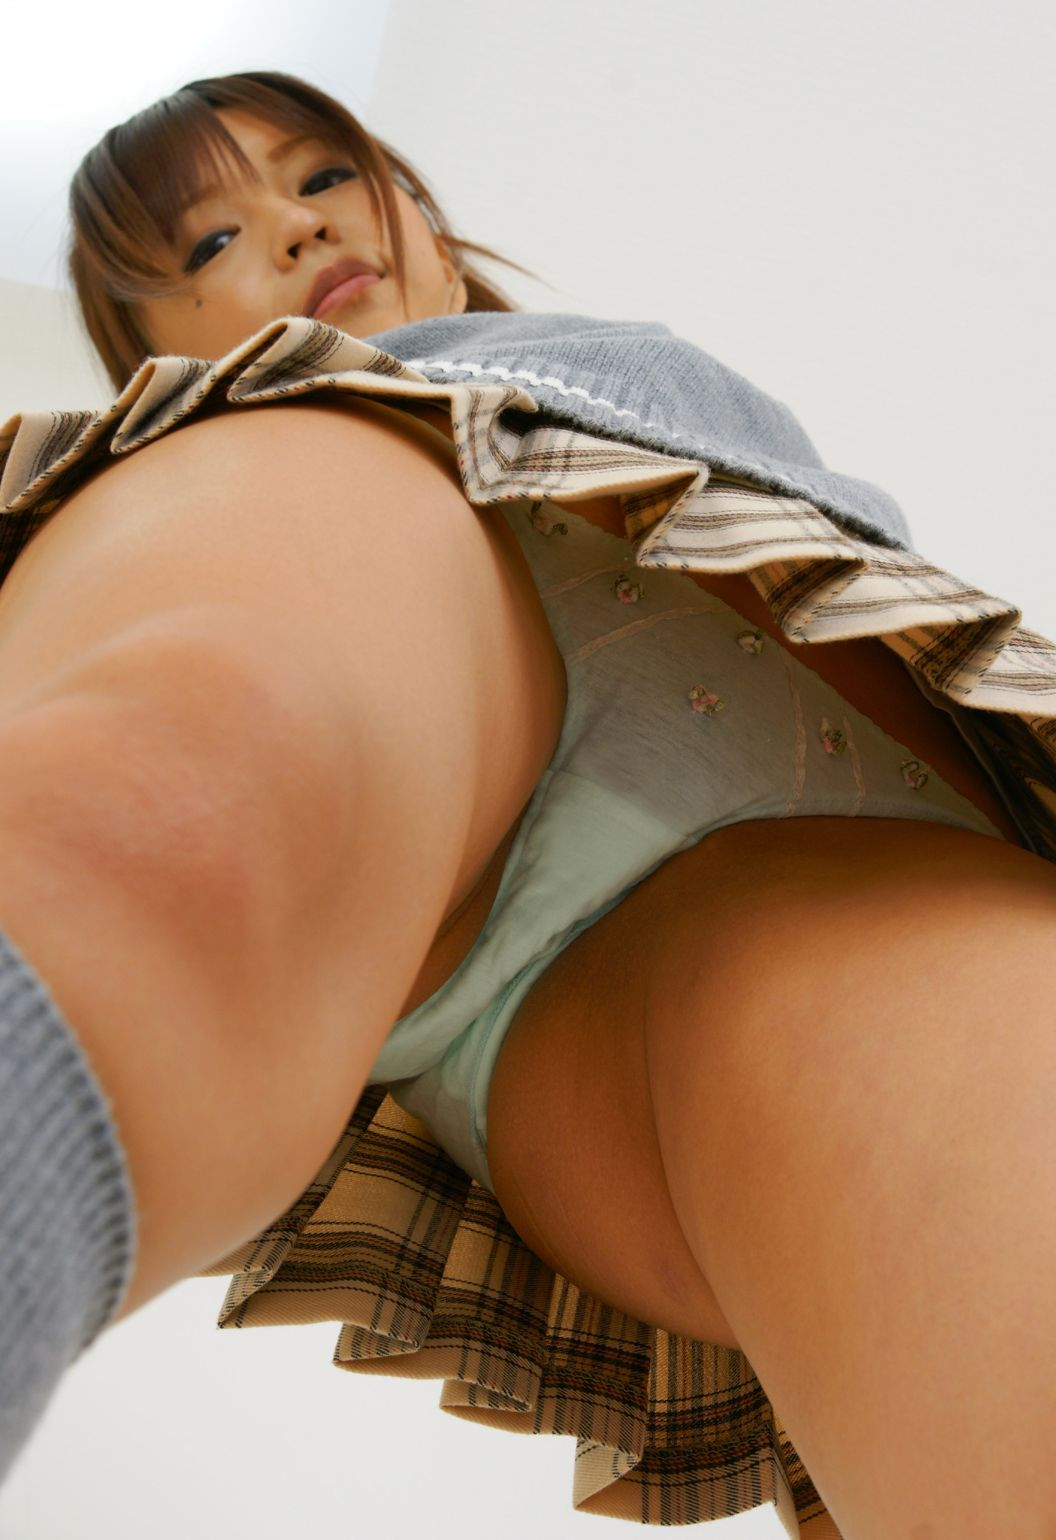 Upskirt spanking views